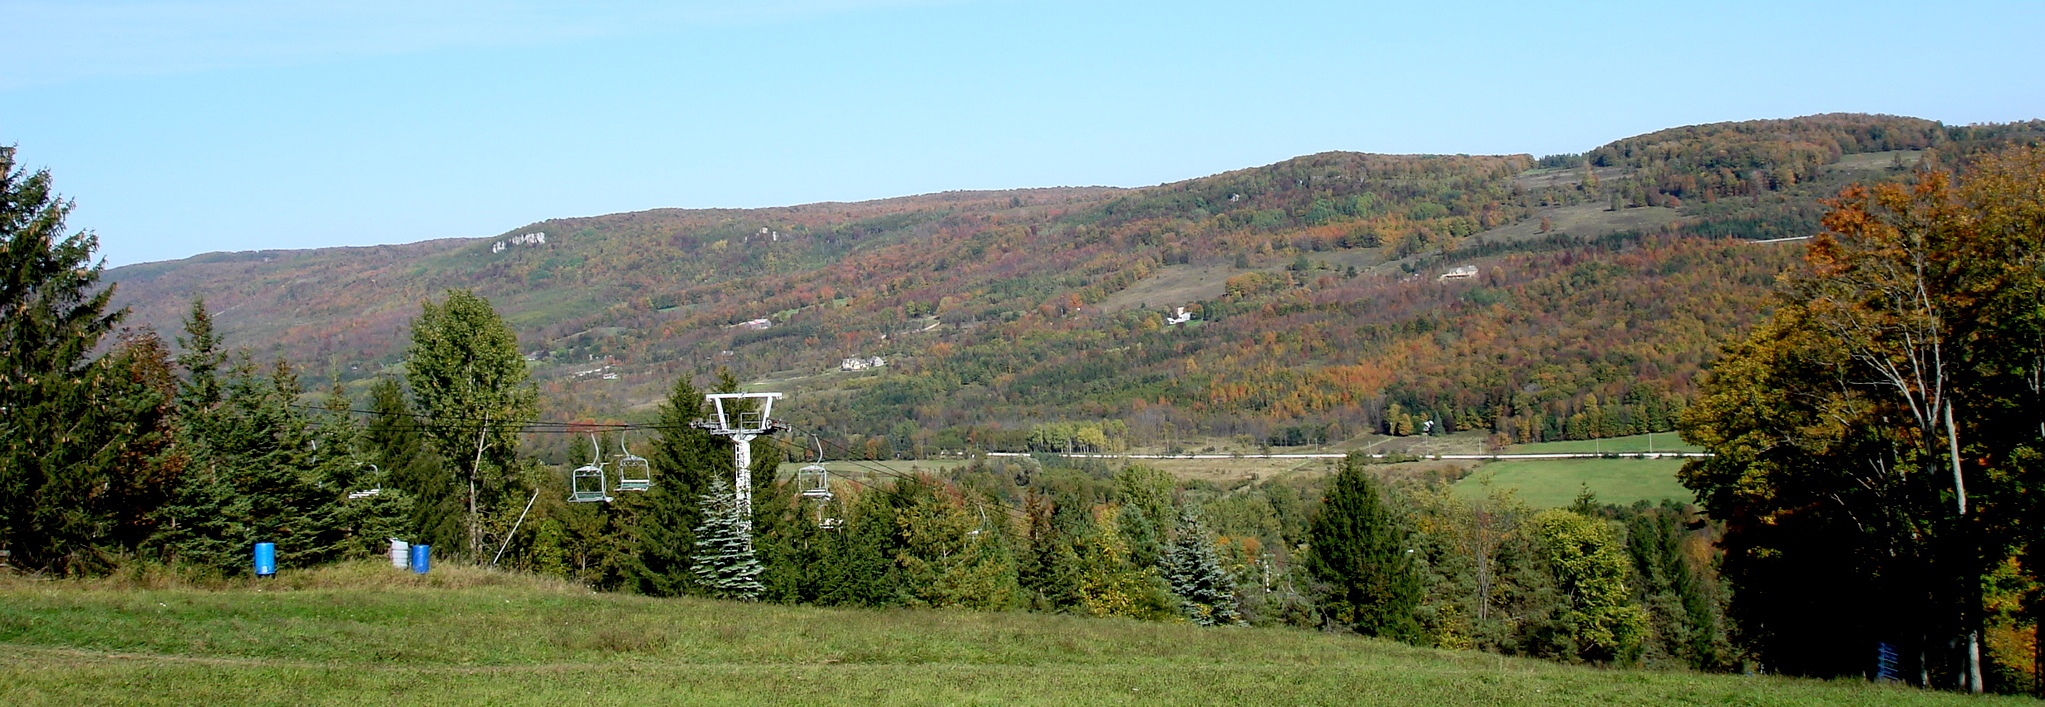 Beaver Valley in Autumn